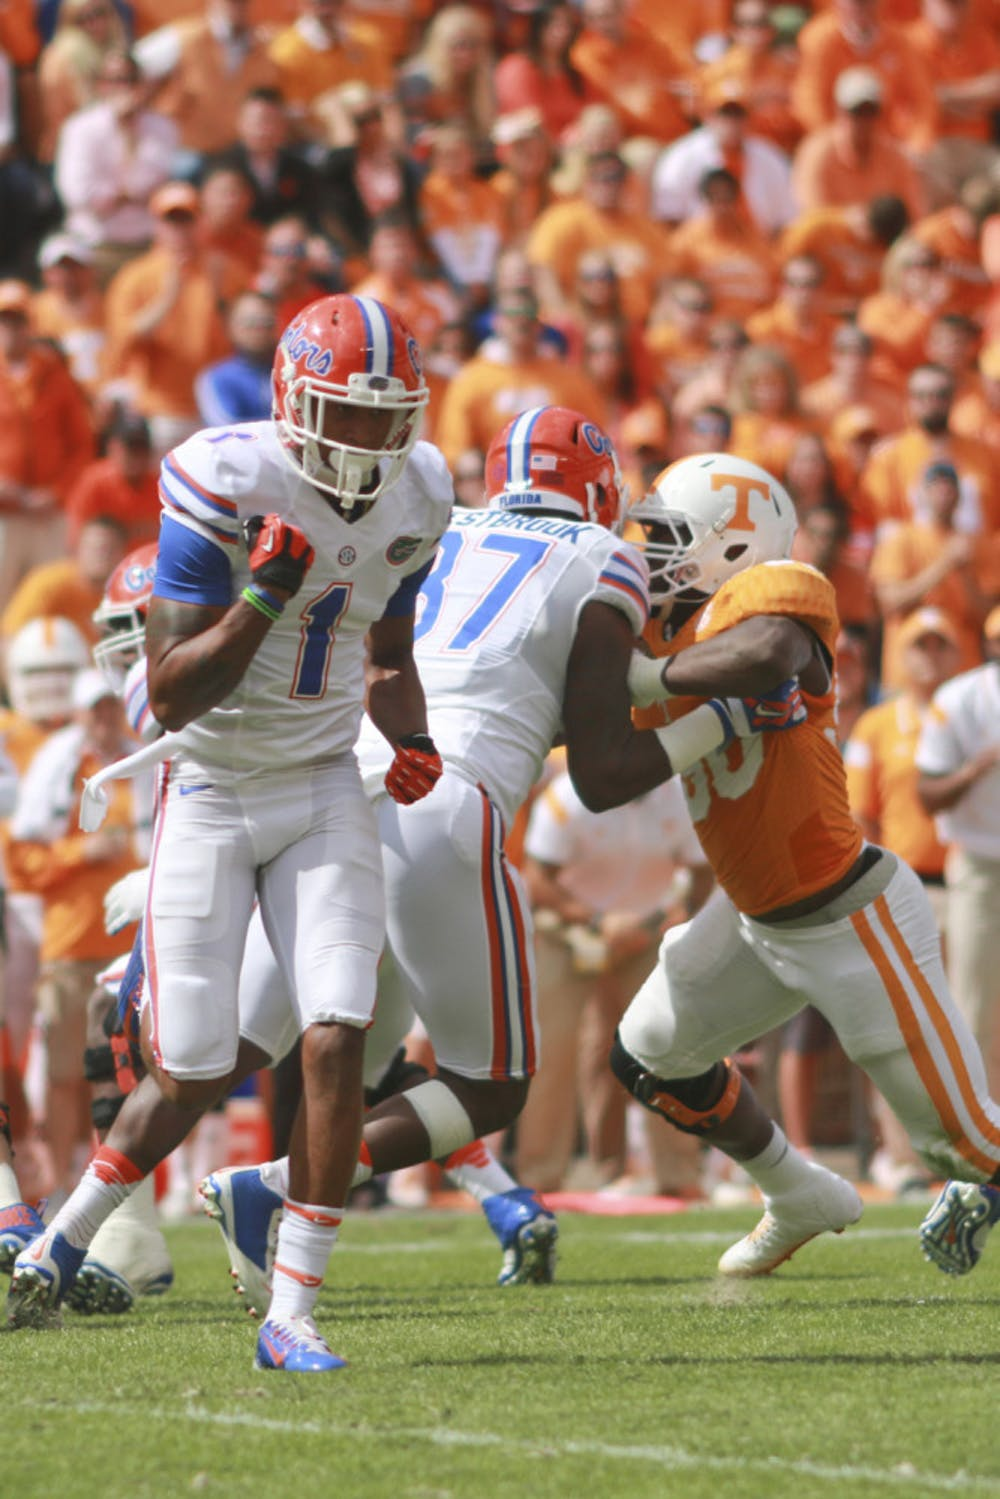 <p>Quinton Dunbar runs a route during Florida's 10-9 win against Tennessee on Saturday at Neyland Stadium.</p>